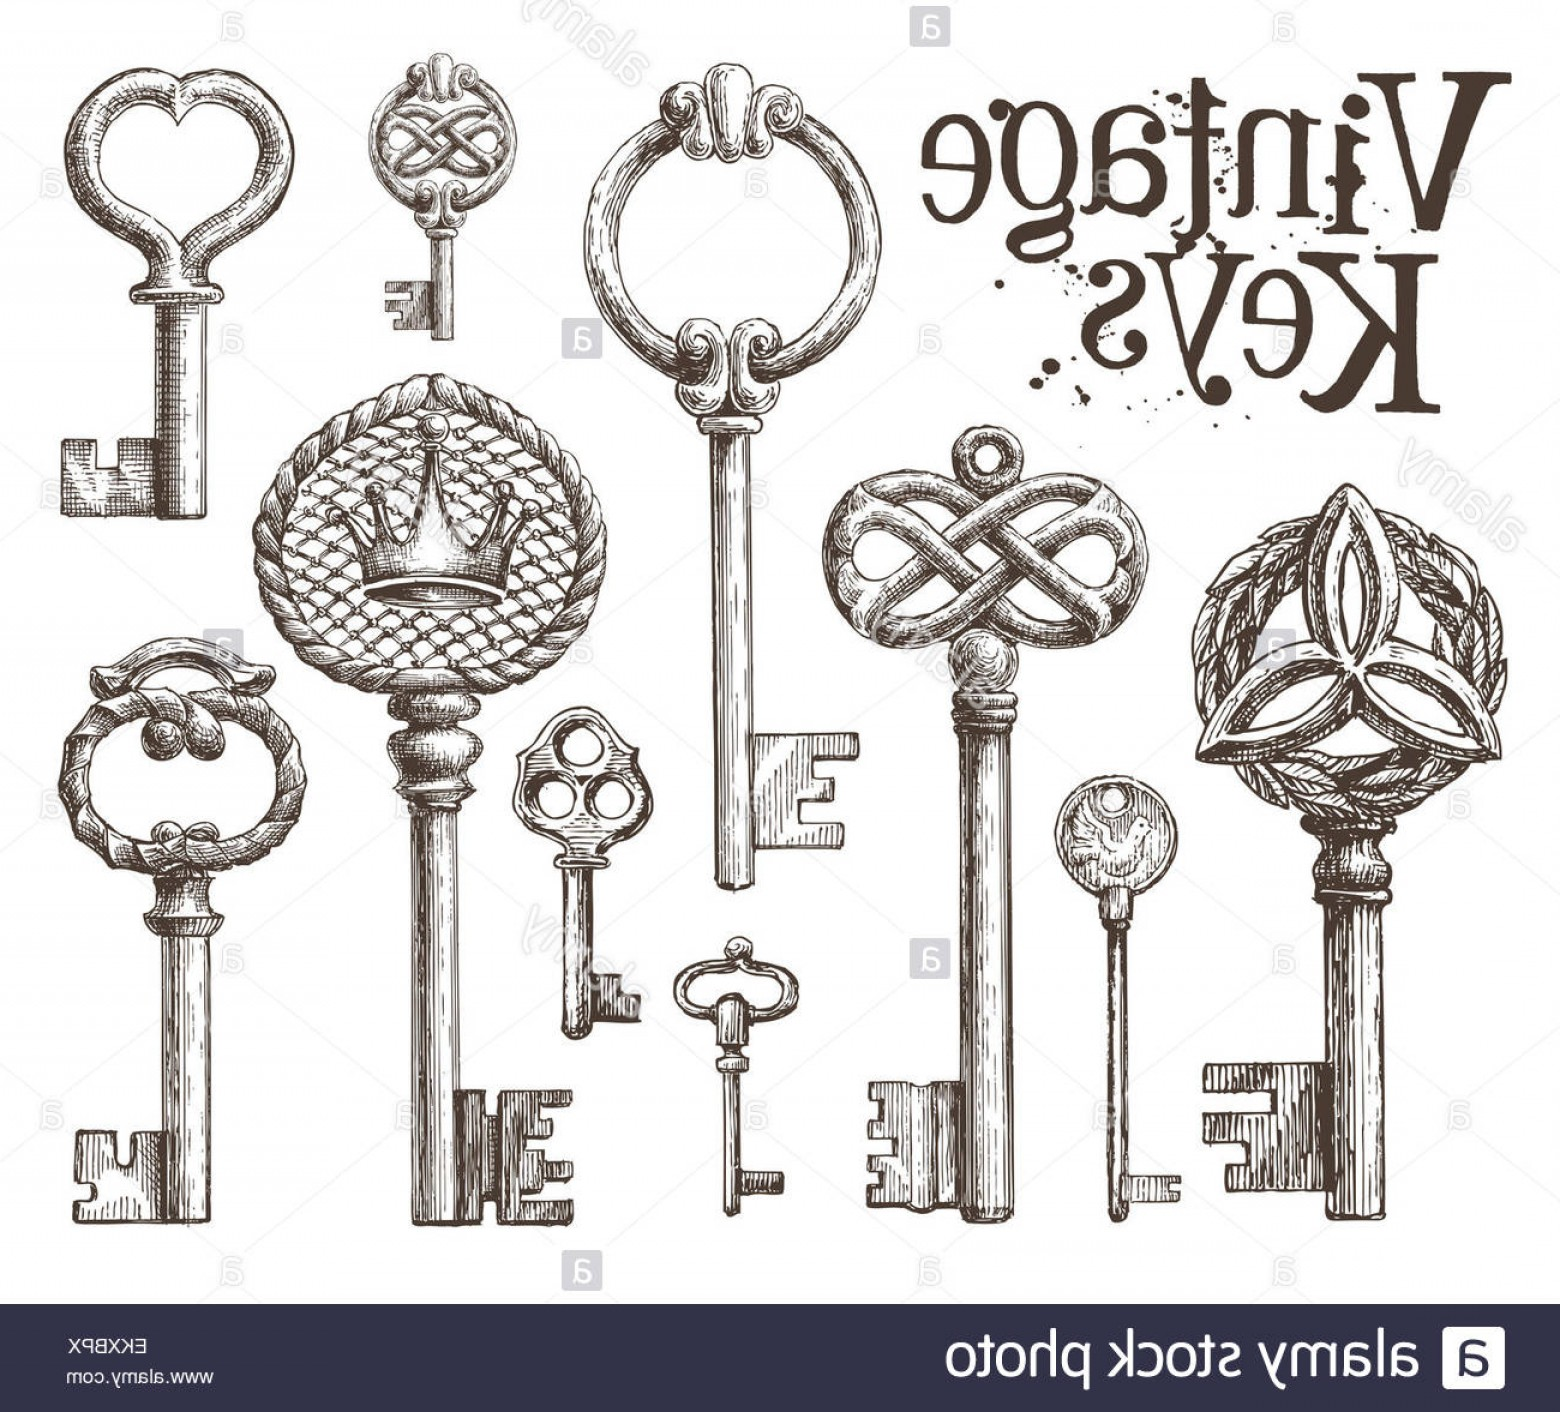 Old Key Vector: Stock Photo Retro Key Vector Logo Design Template Antiques Or Old Thing Icon